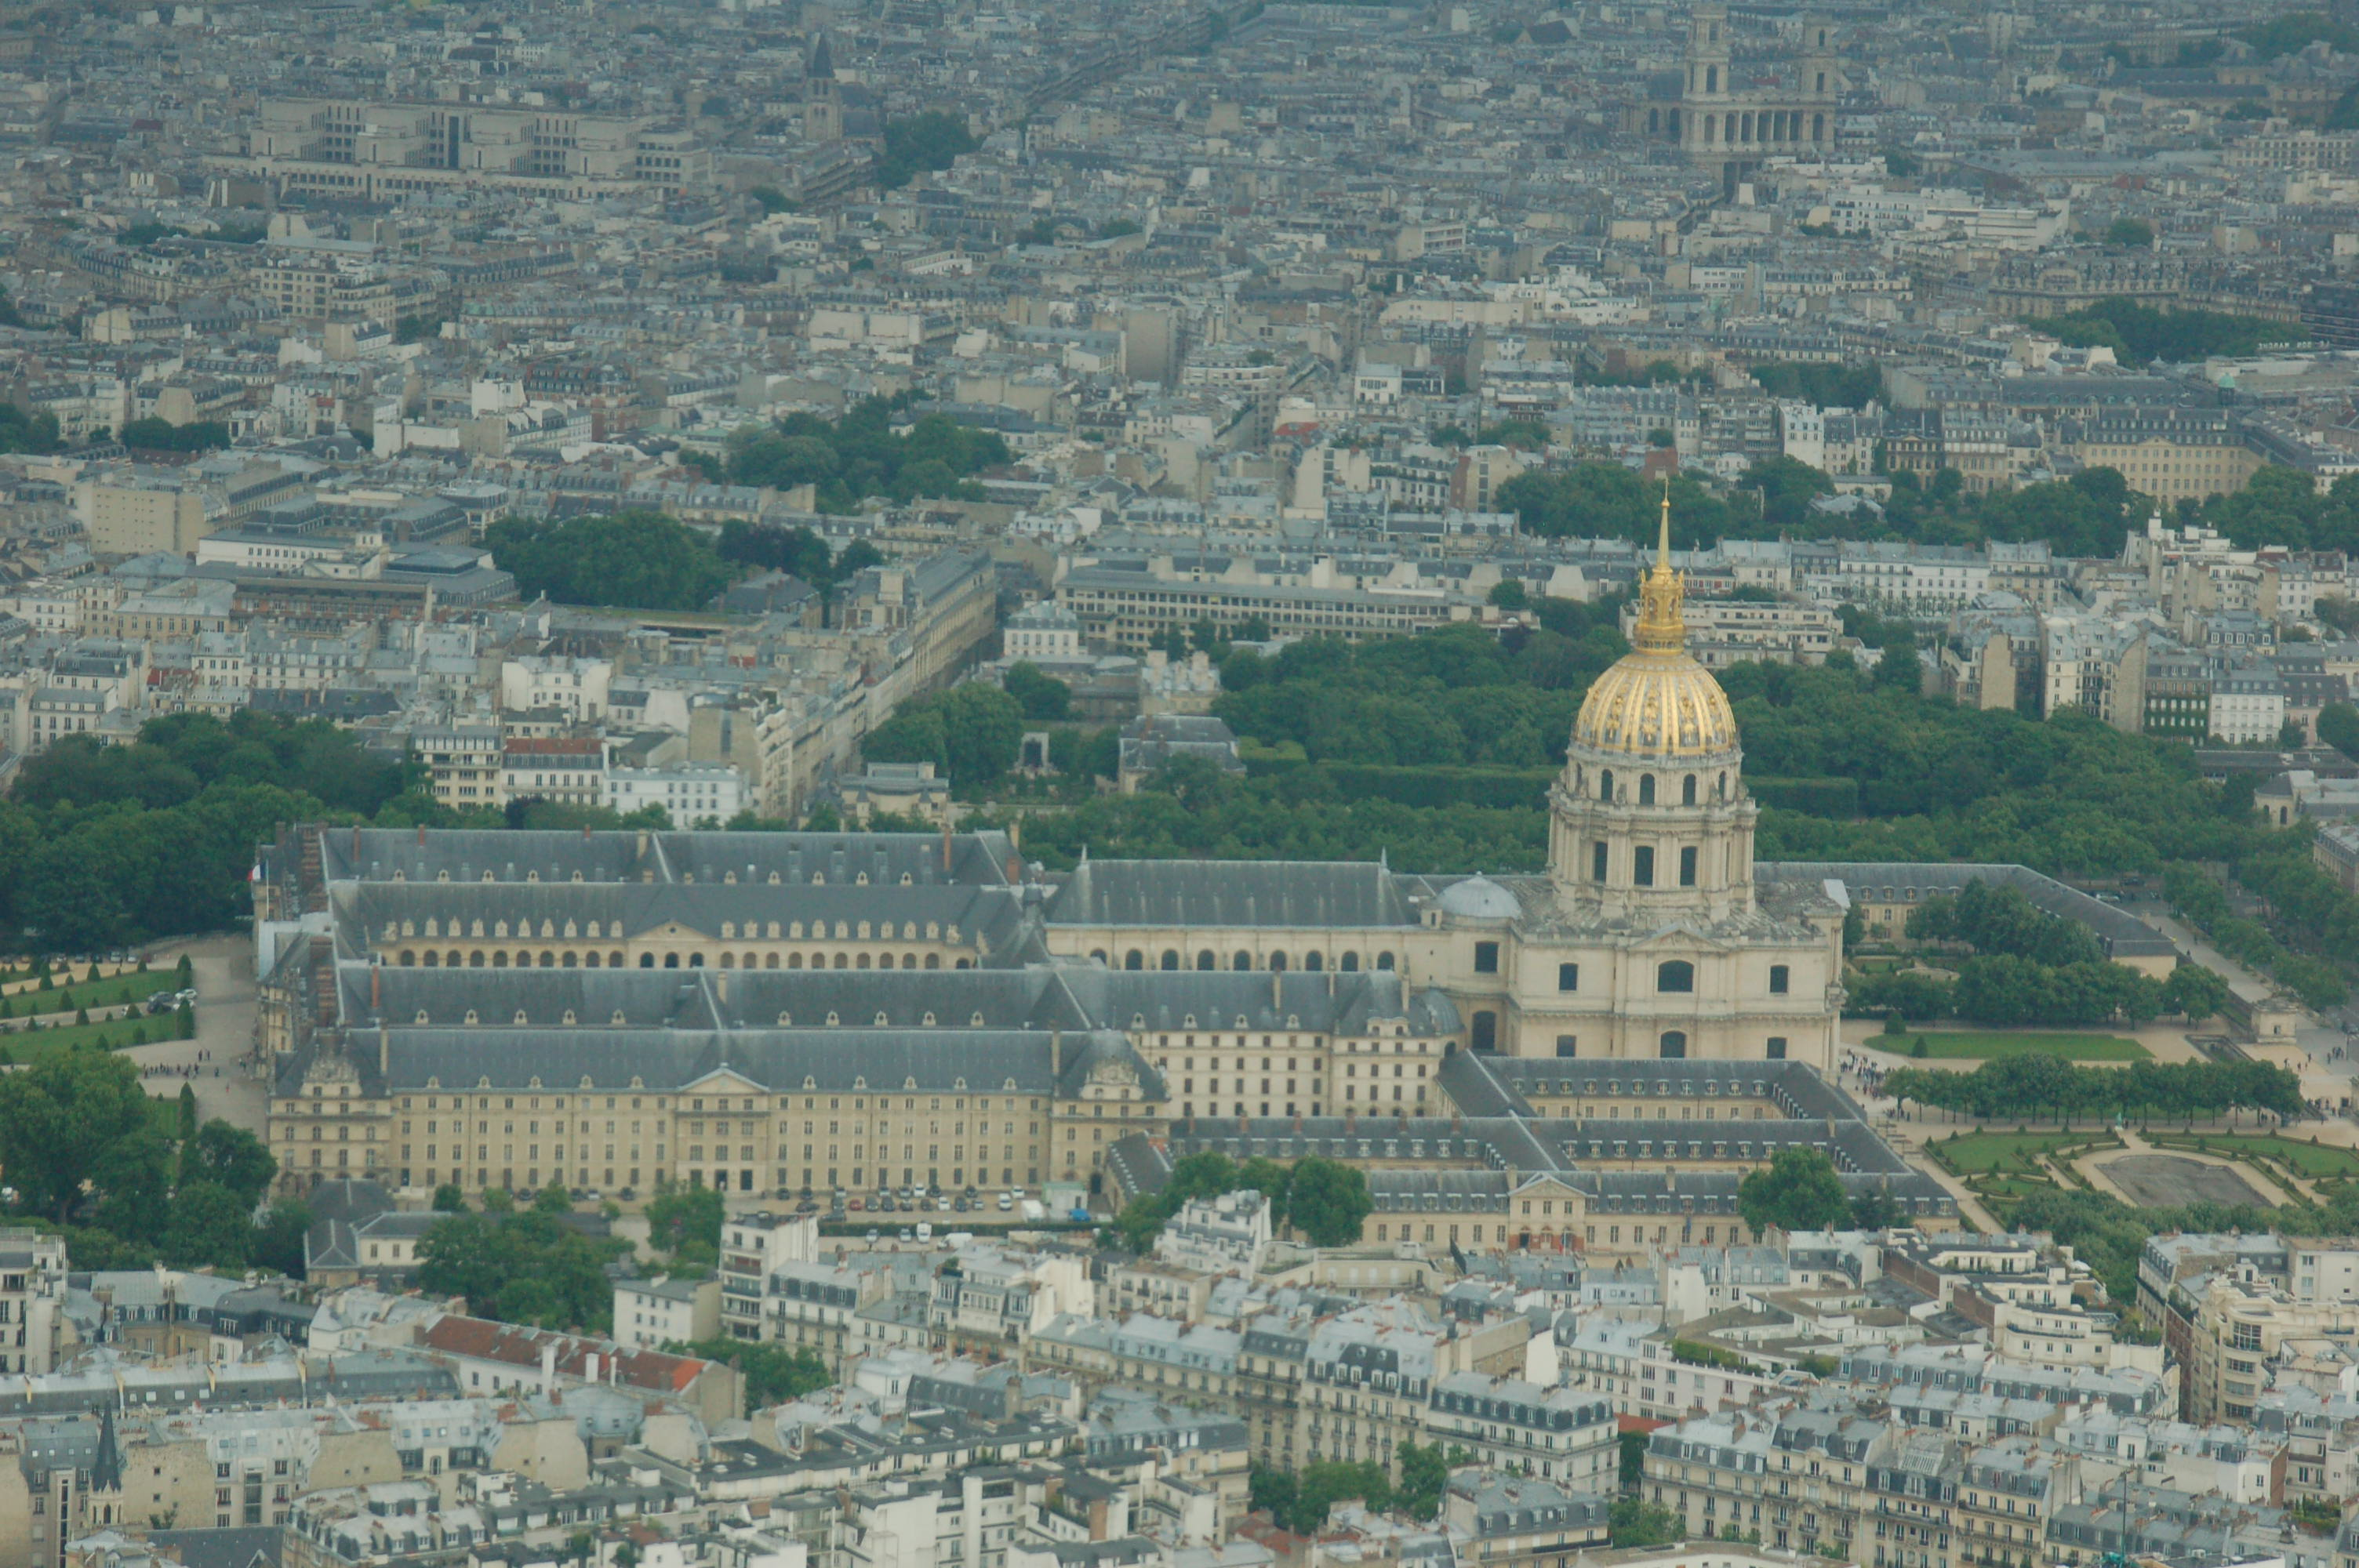 Eglise Du Dome From Top Of The Eiffel Tower